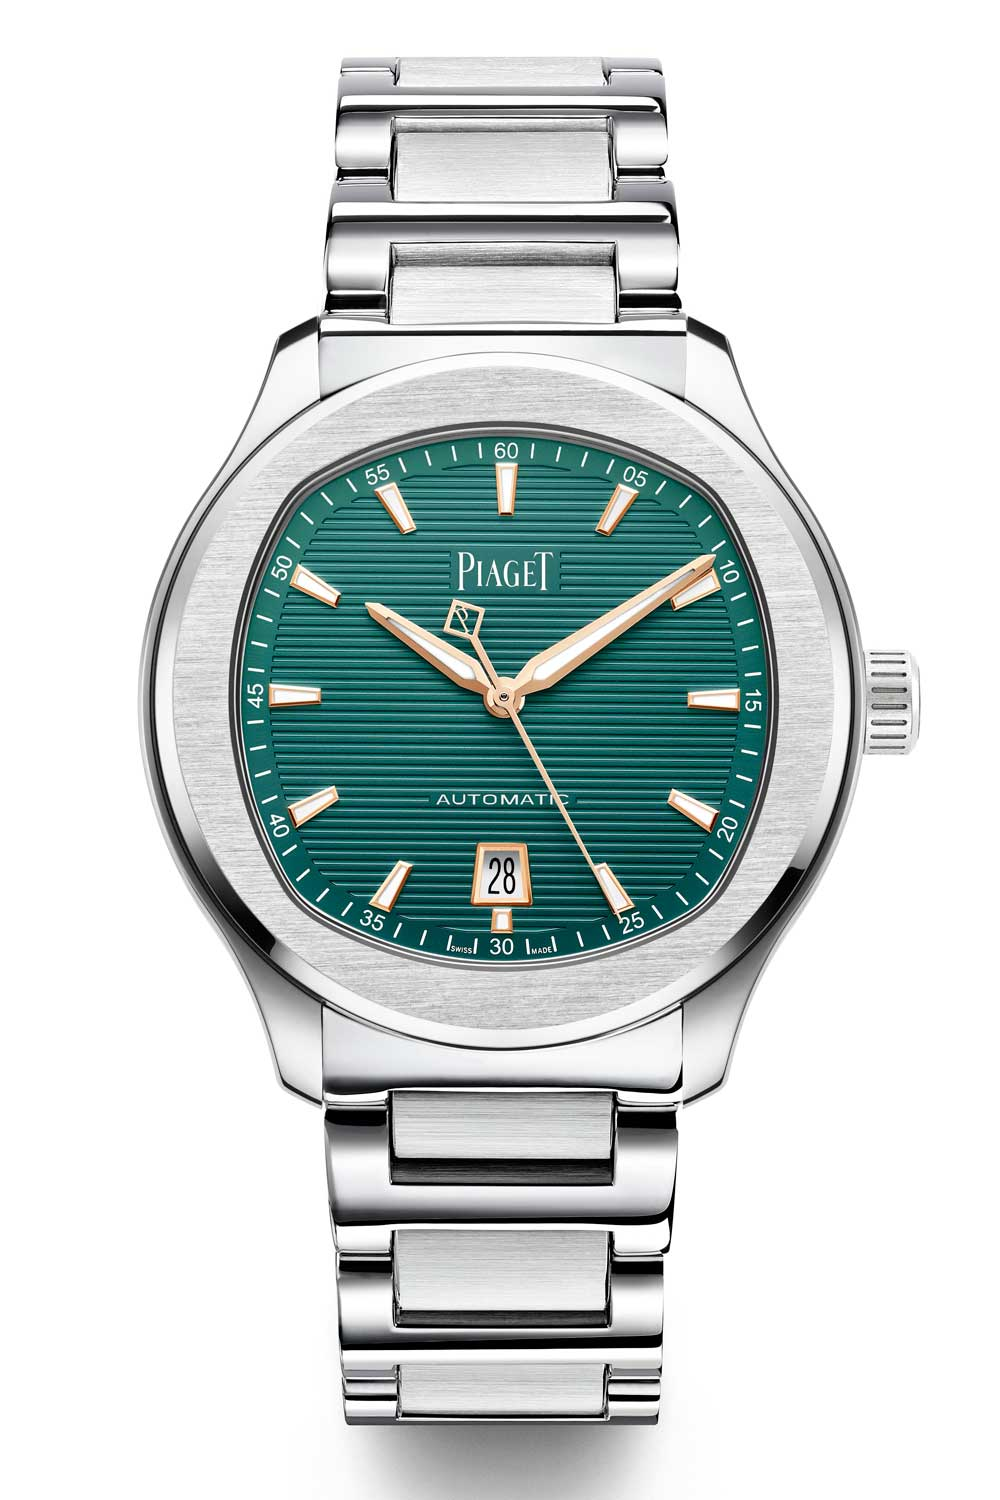 Piaget Polo S in Green